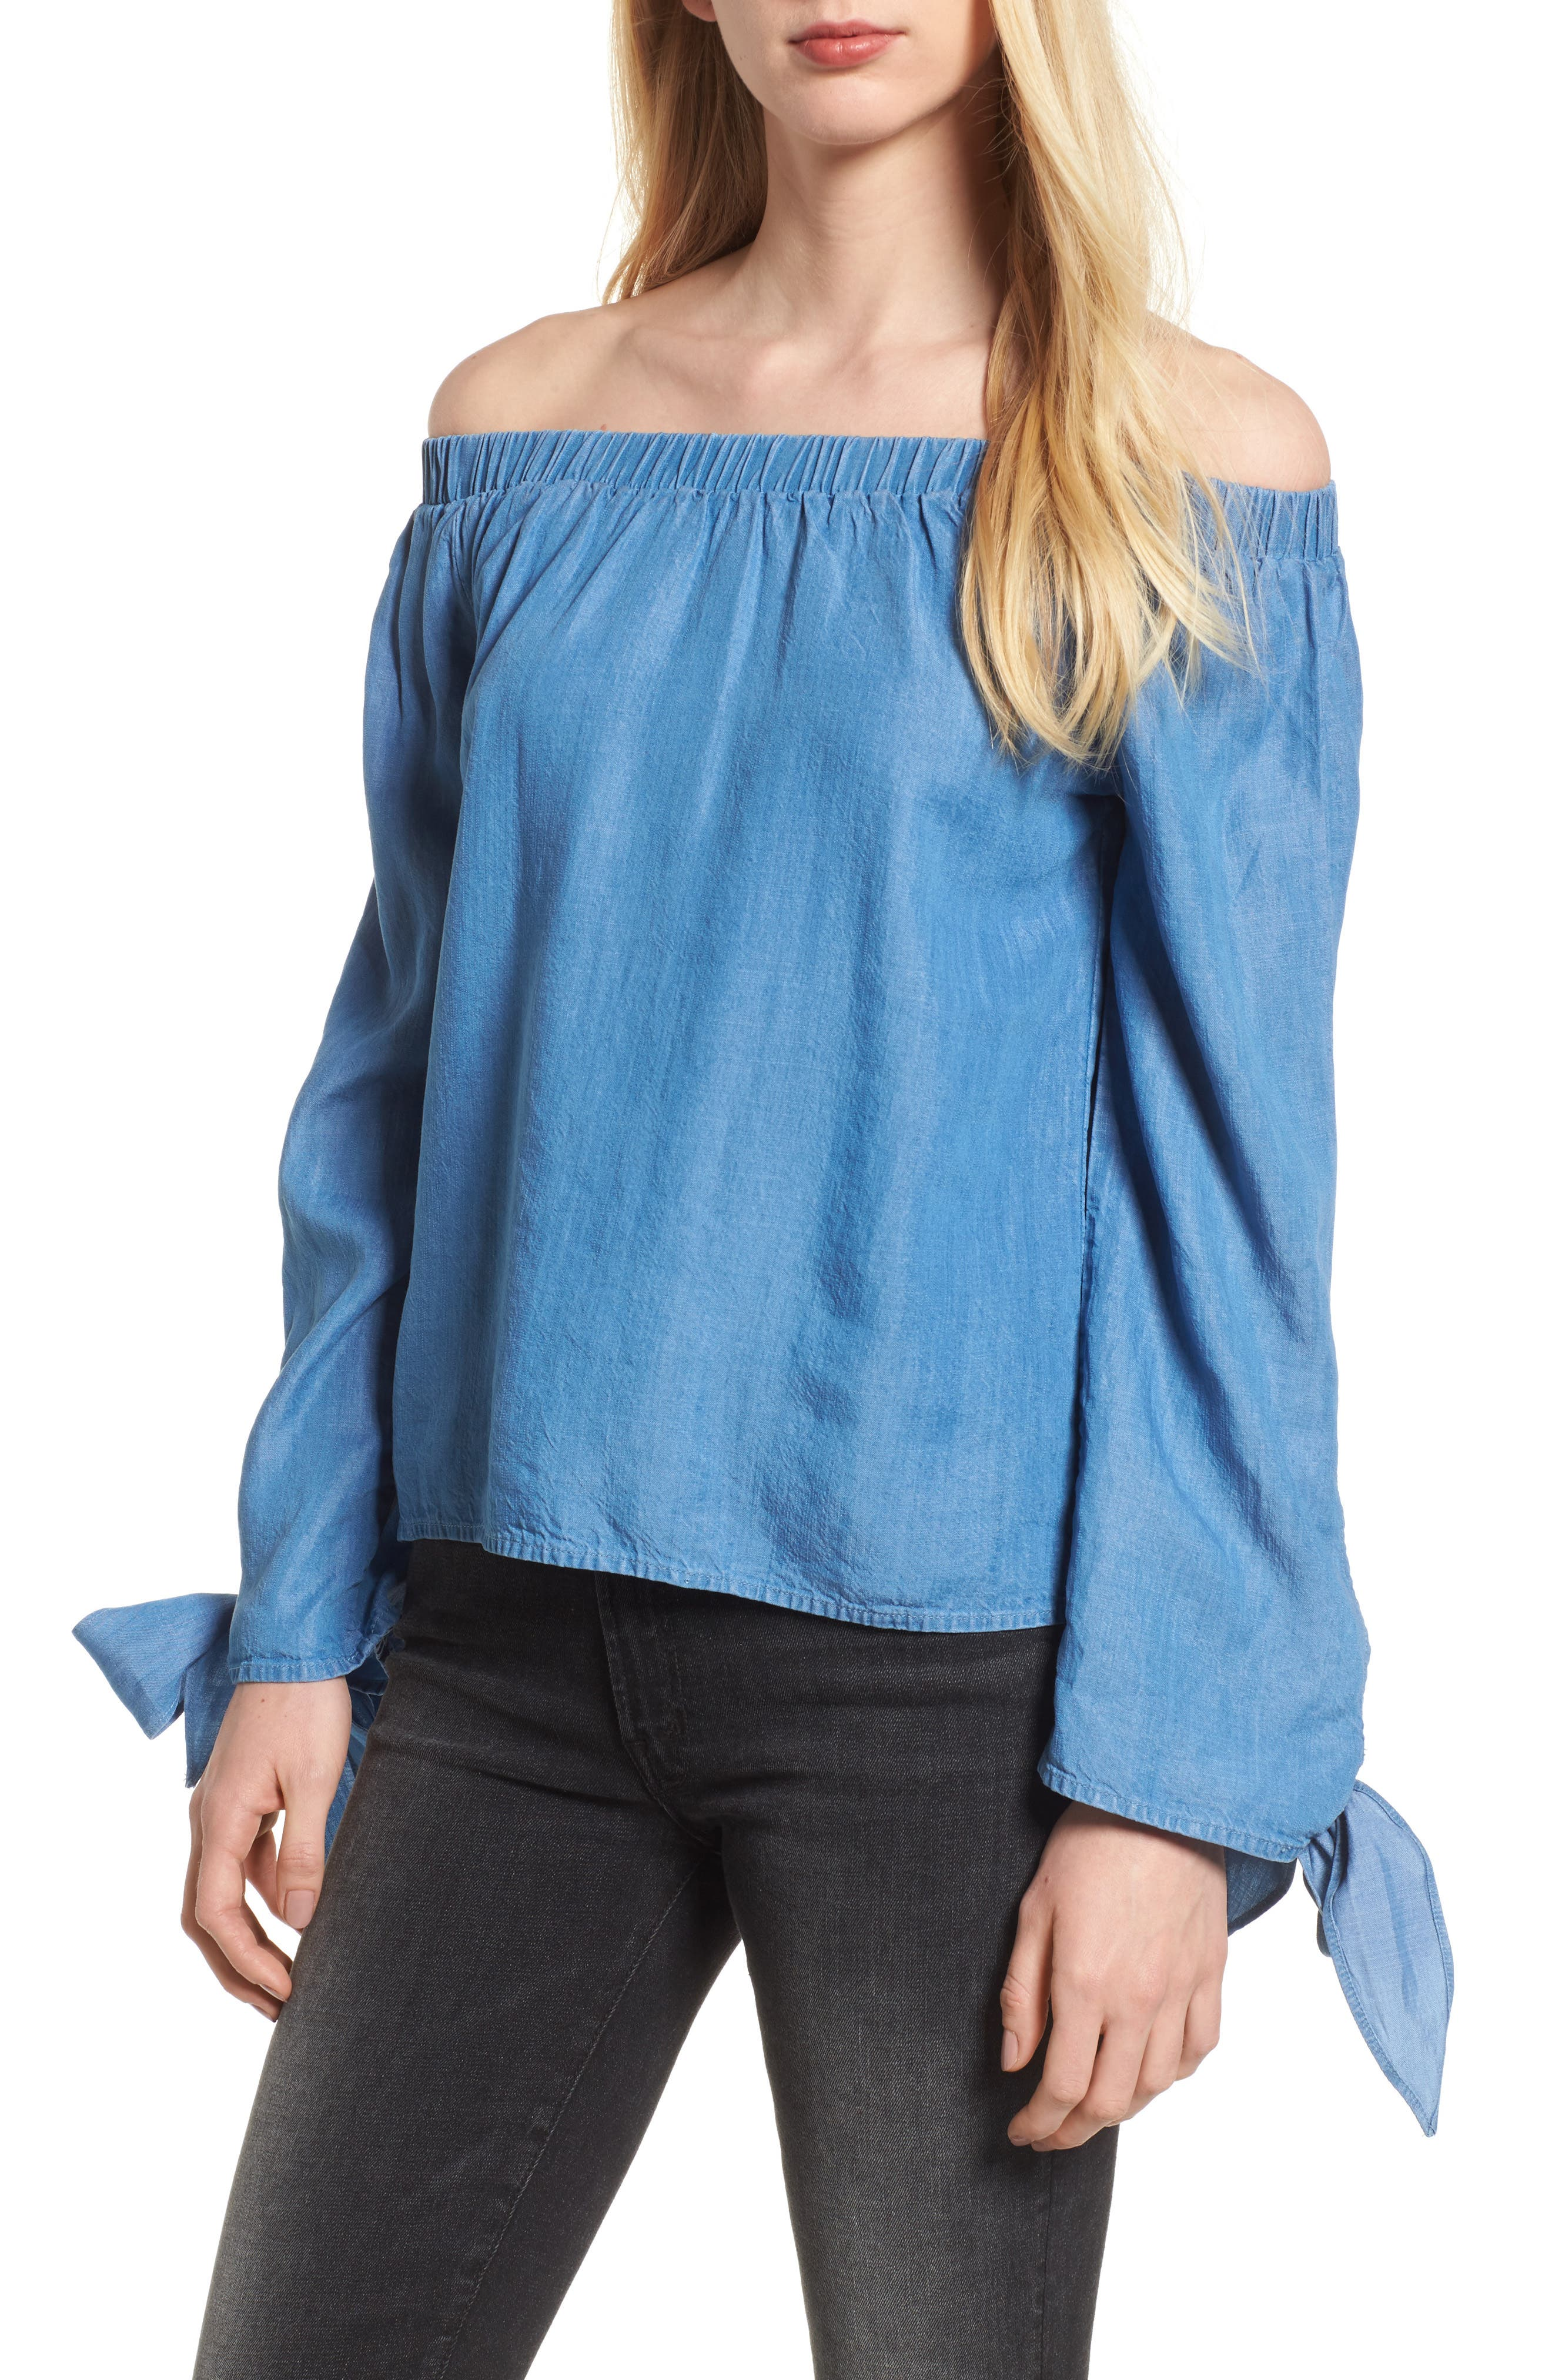 Bishop + Young Avery Off the Shoulder Top,                             Main thumbnail 1, color,